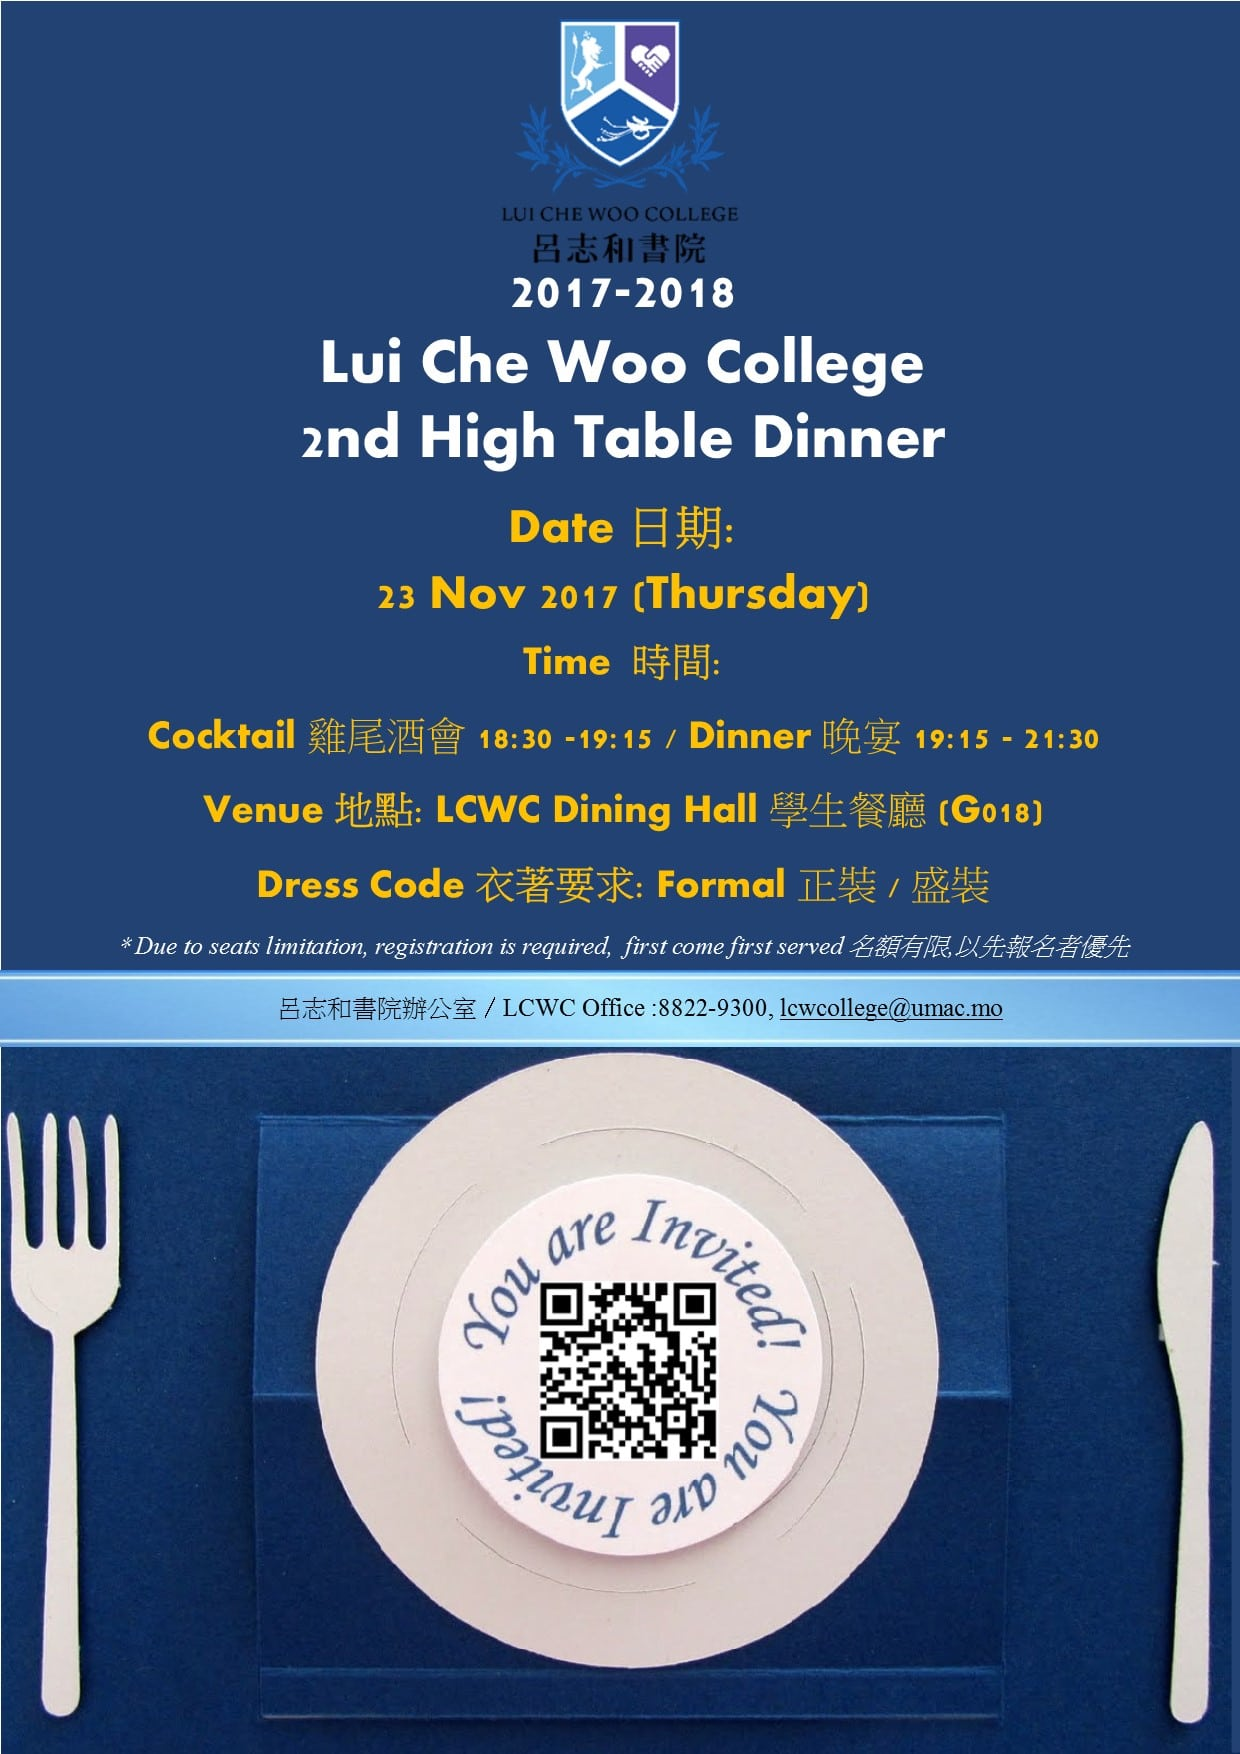 AY2017-18 LCWC 2nd High Table Dinner and Pre-drink Reception